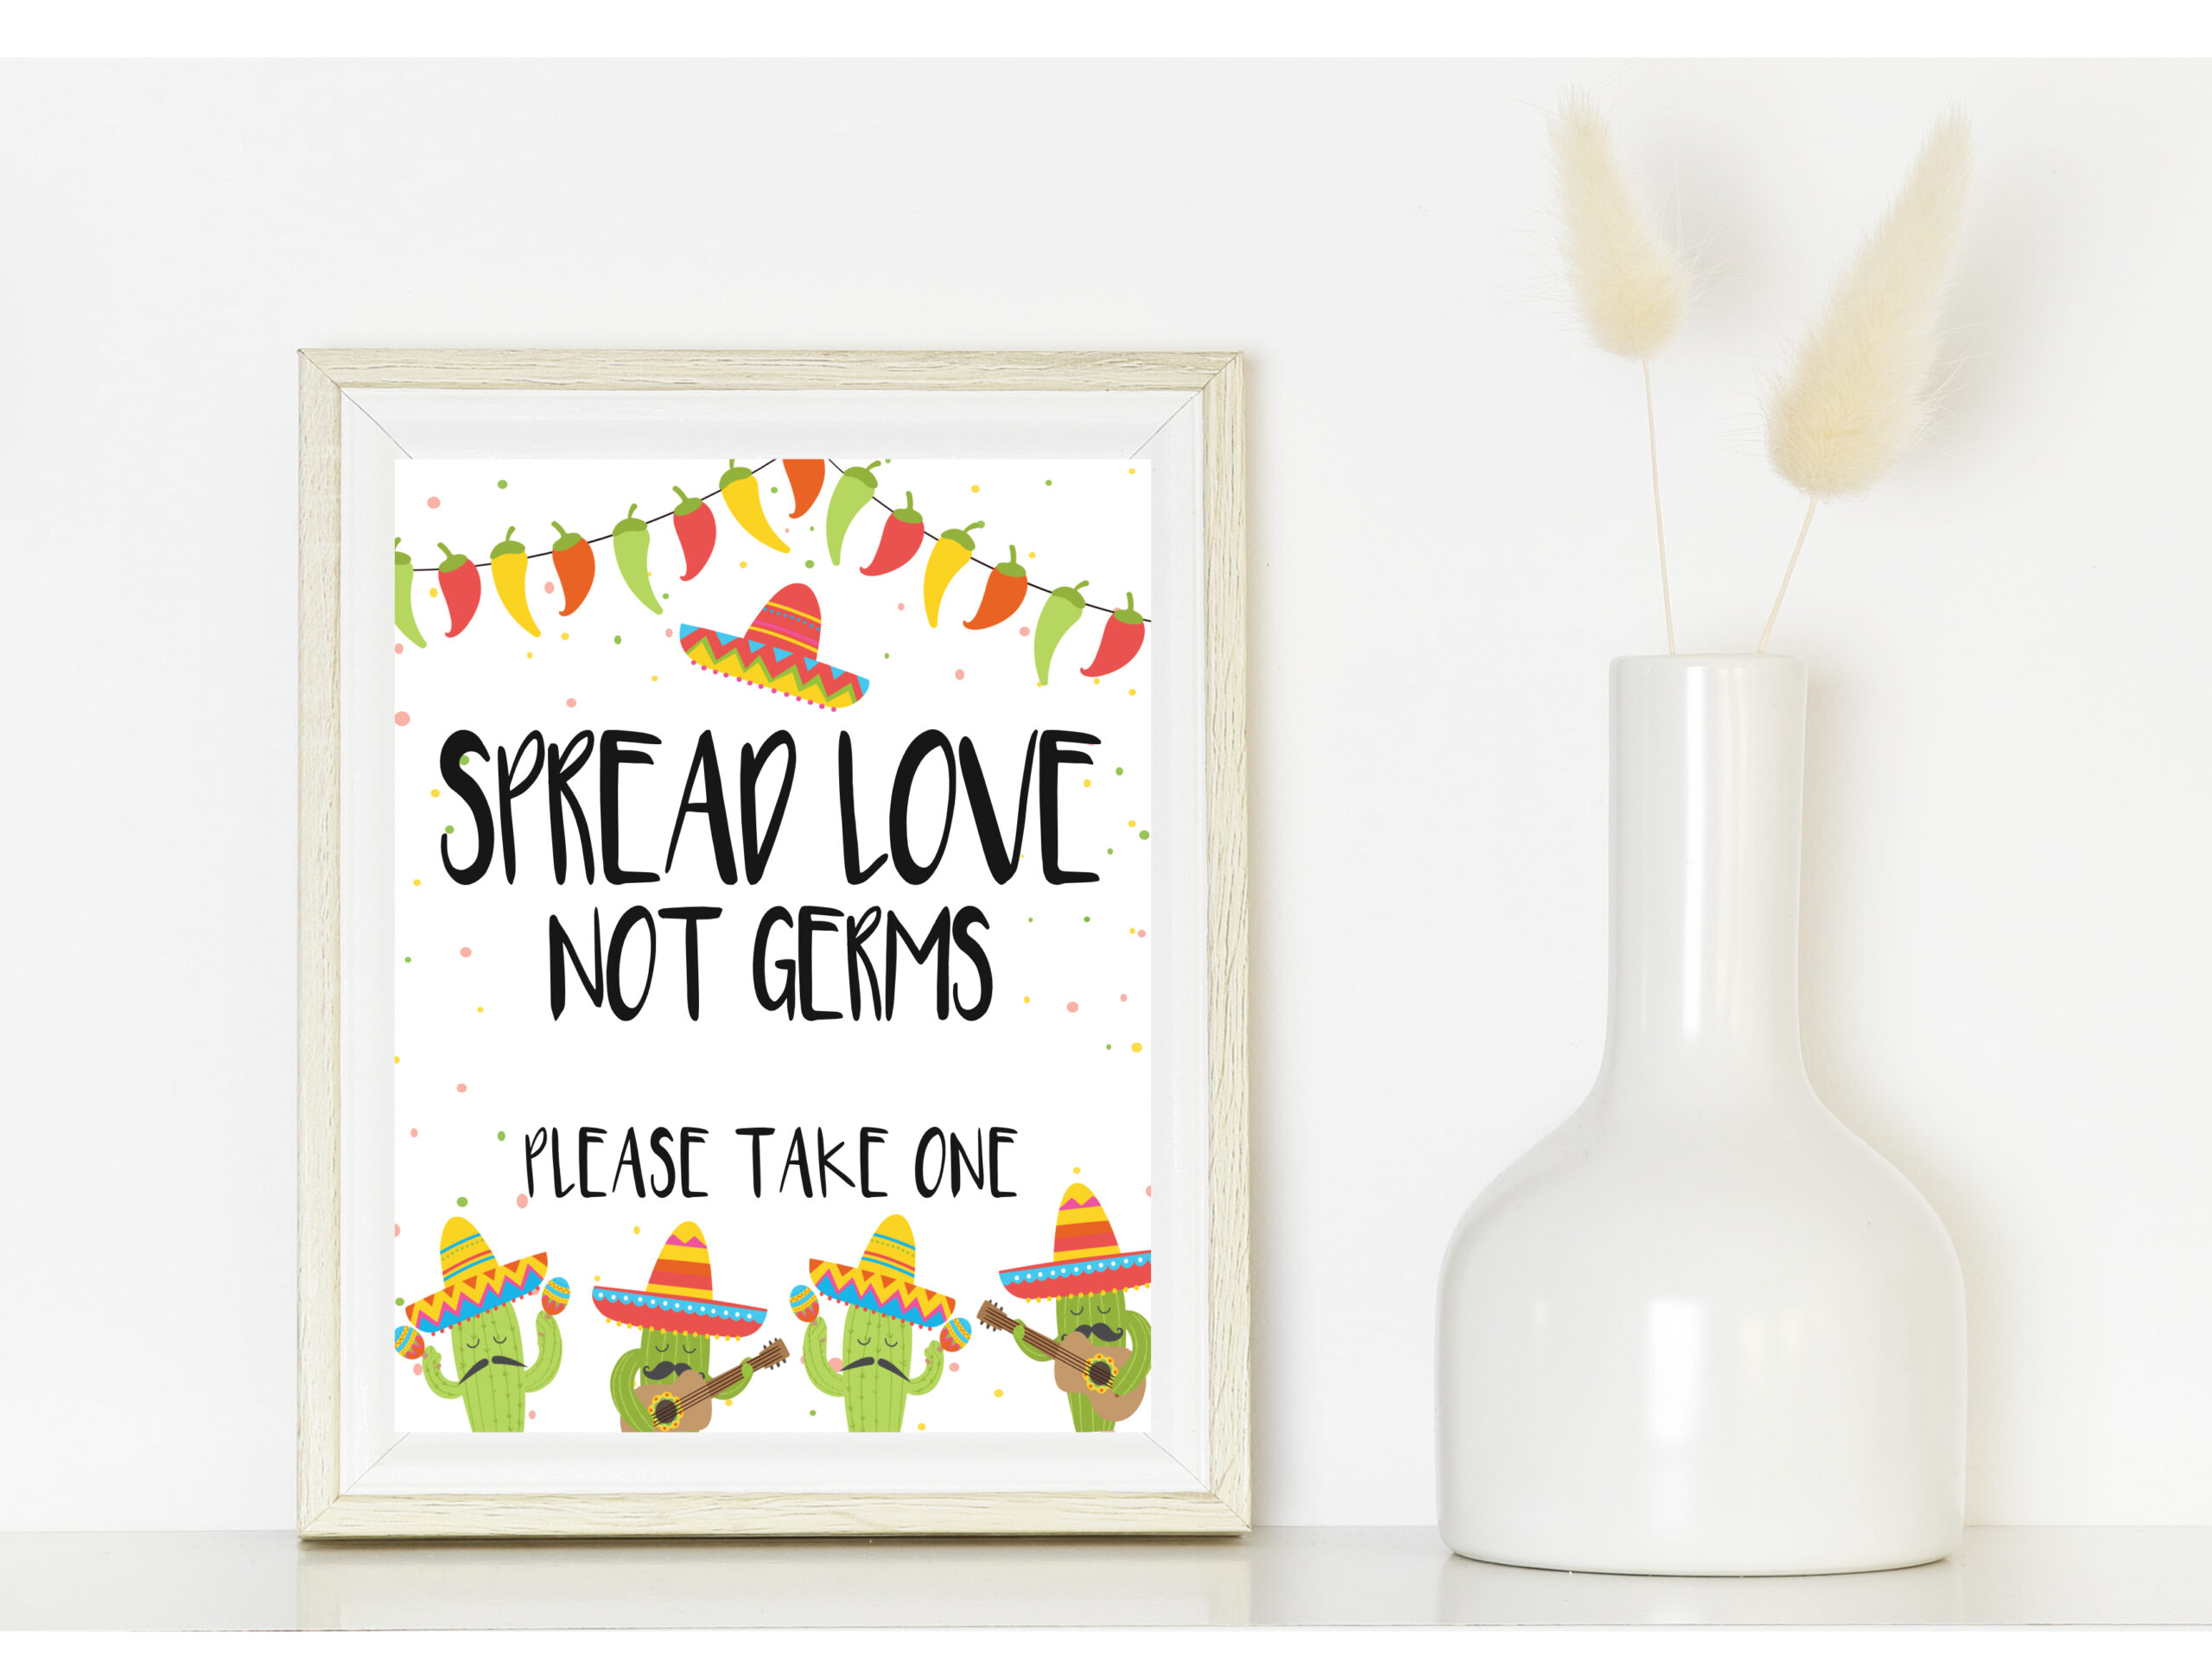 BRIDAL SHOWER DECOR | SIGN SPREAD LOVE NOT GERMS SIGN Baby Shower